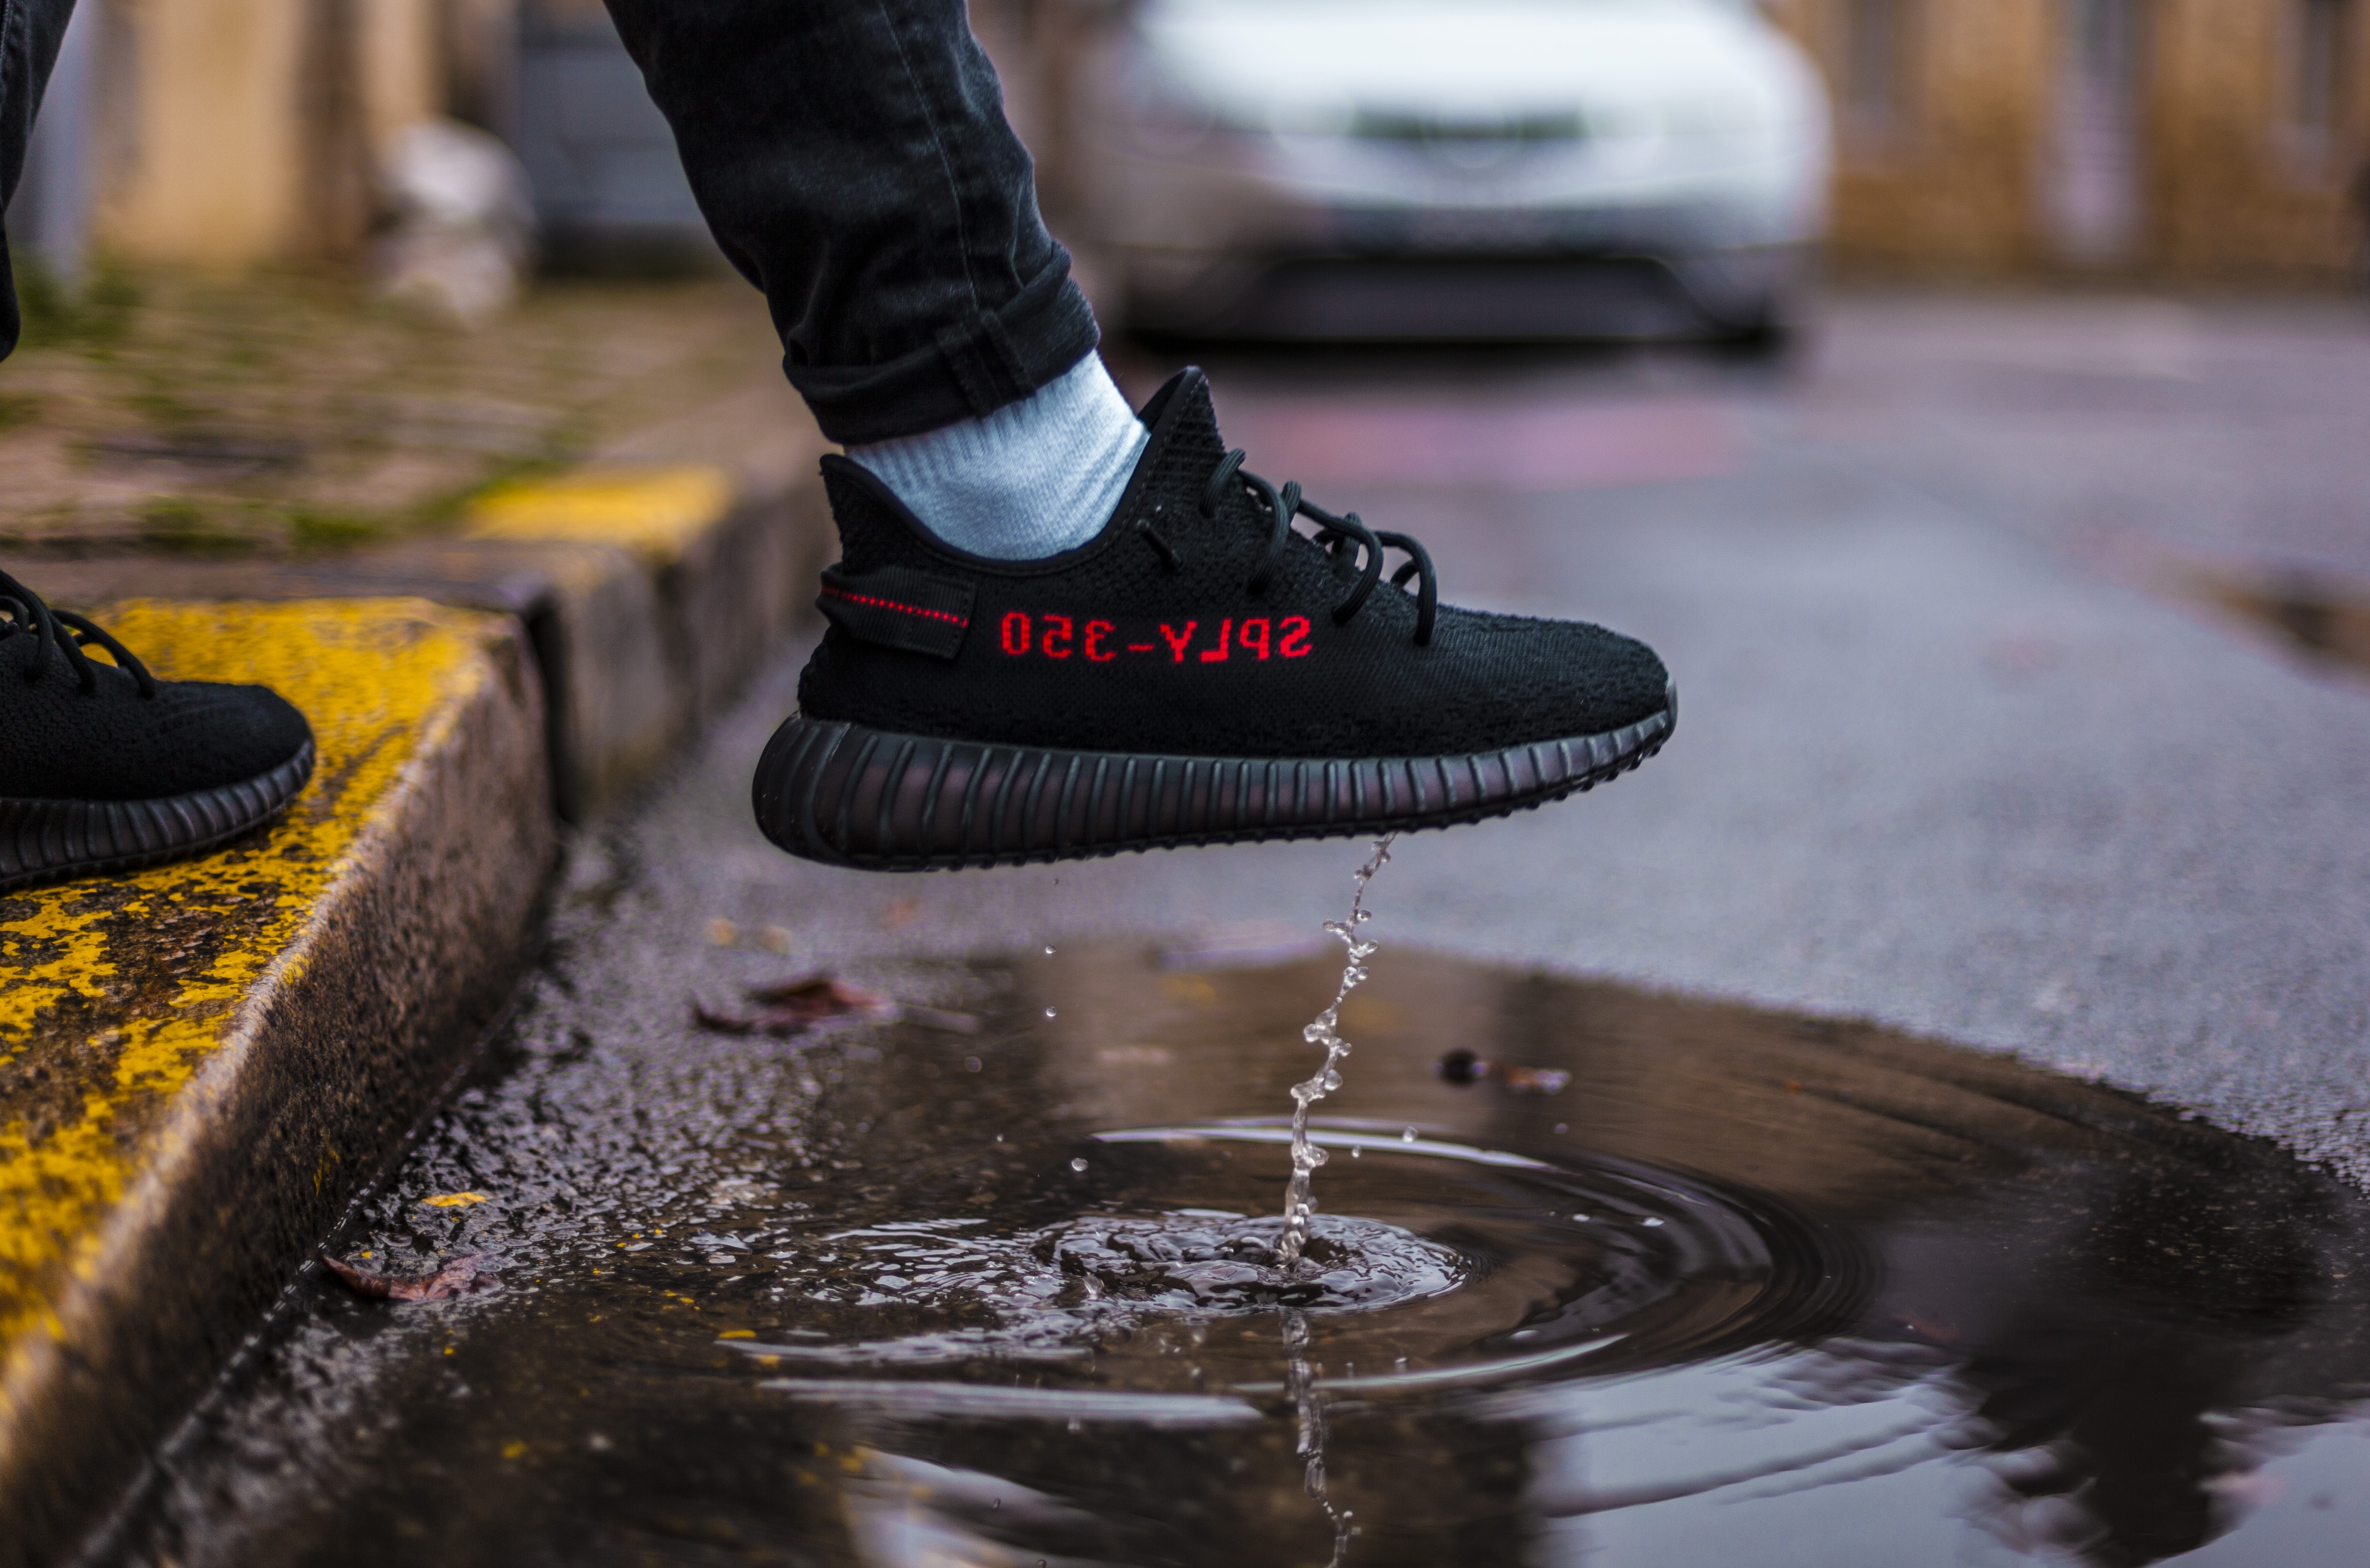 person wearing adidas Yeezy Boost 350 shoe above road puddle